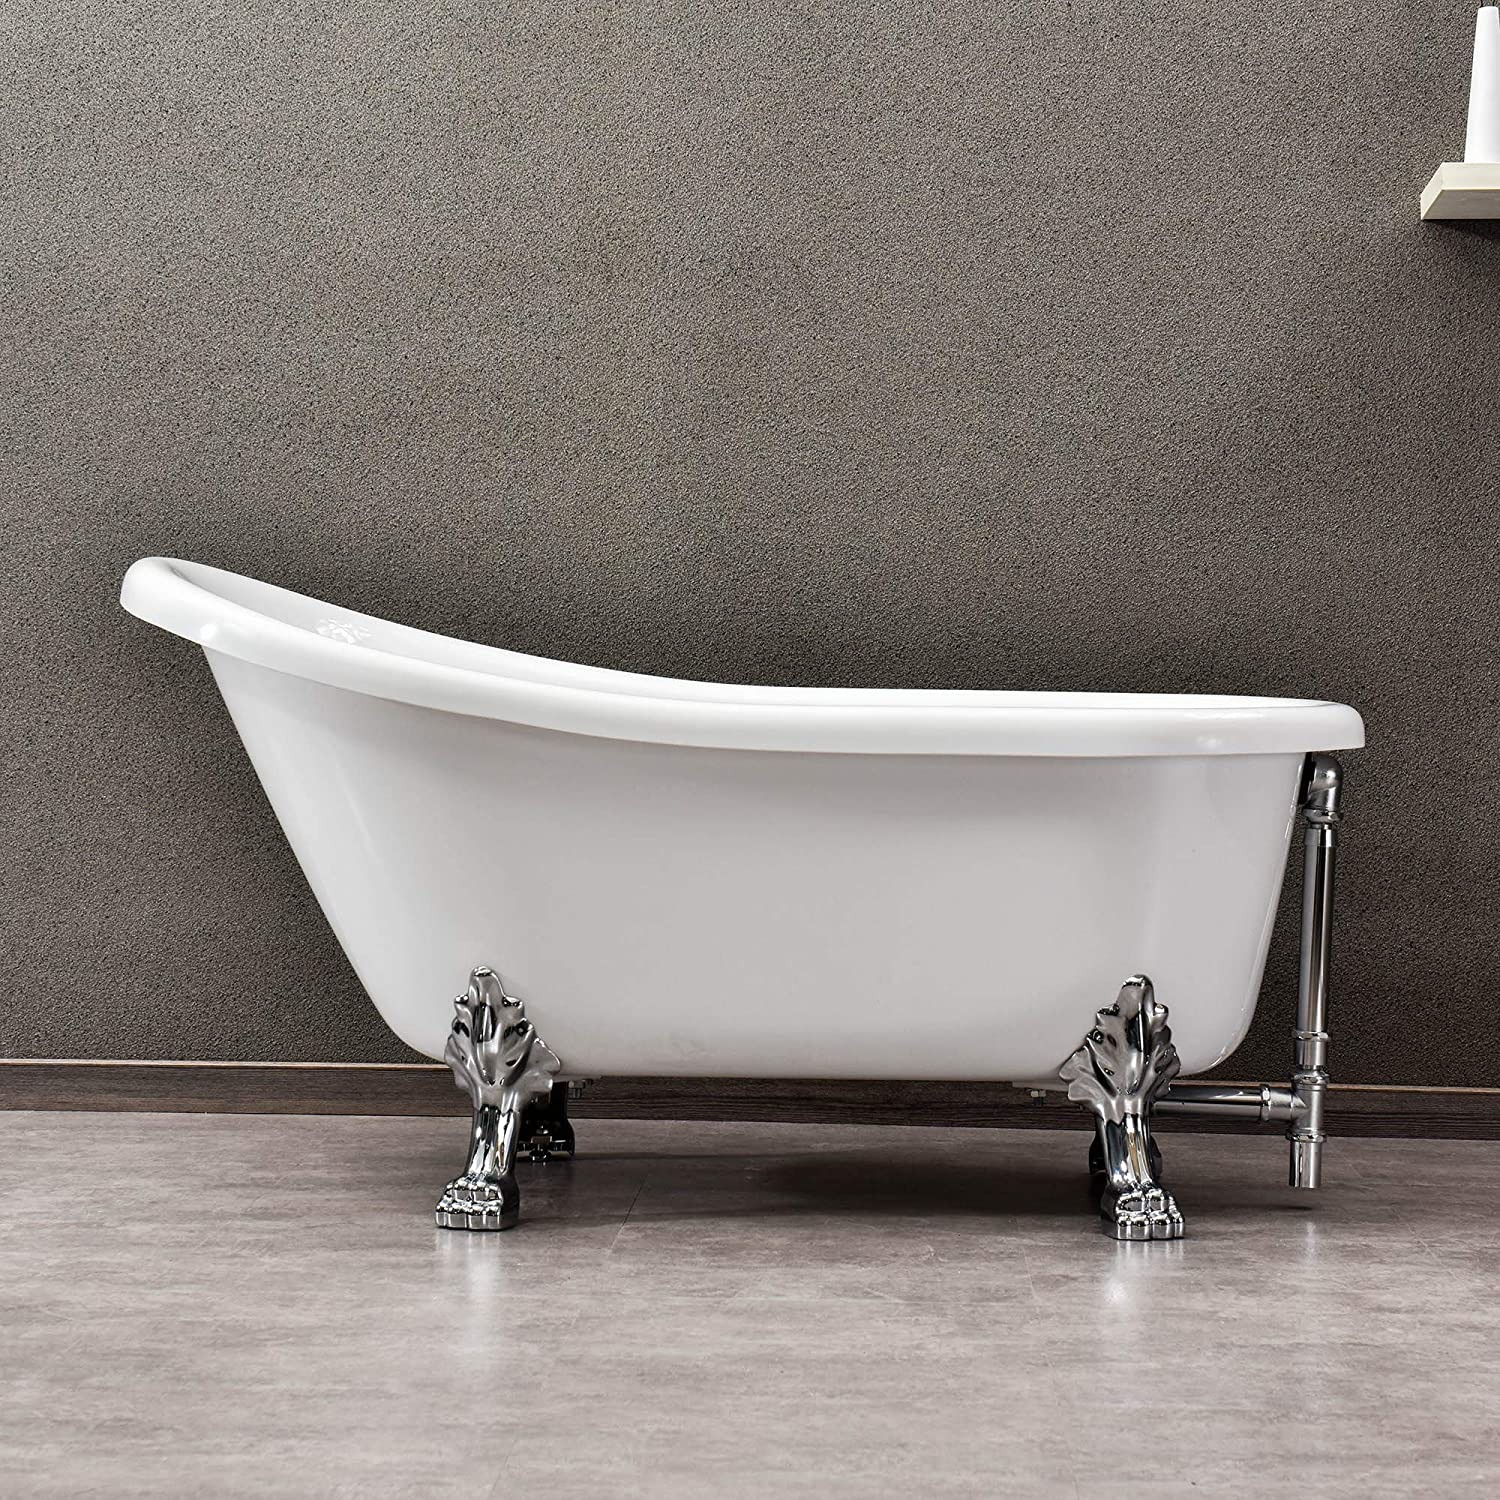 WOODBRIDGE 59 x 30 Slipper Clawfoot Bathtub with Solid Brass Polished Chrome Finish Drain and Overflow, B-0022 BTA1522,White